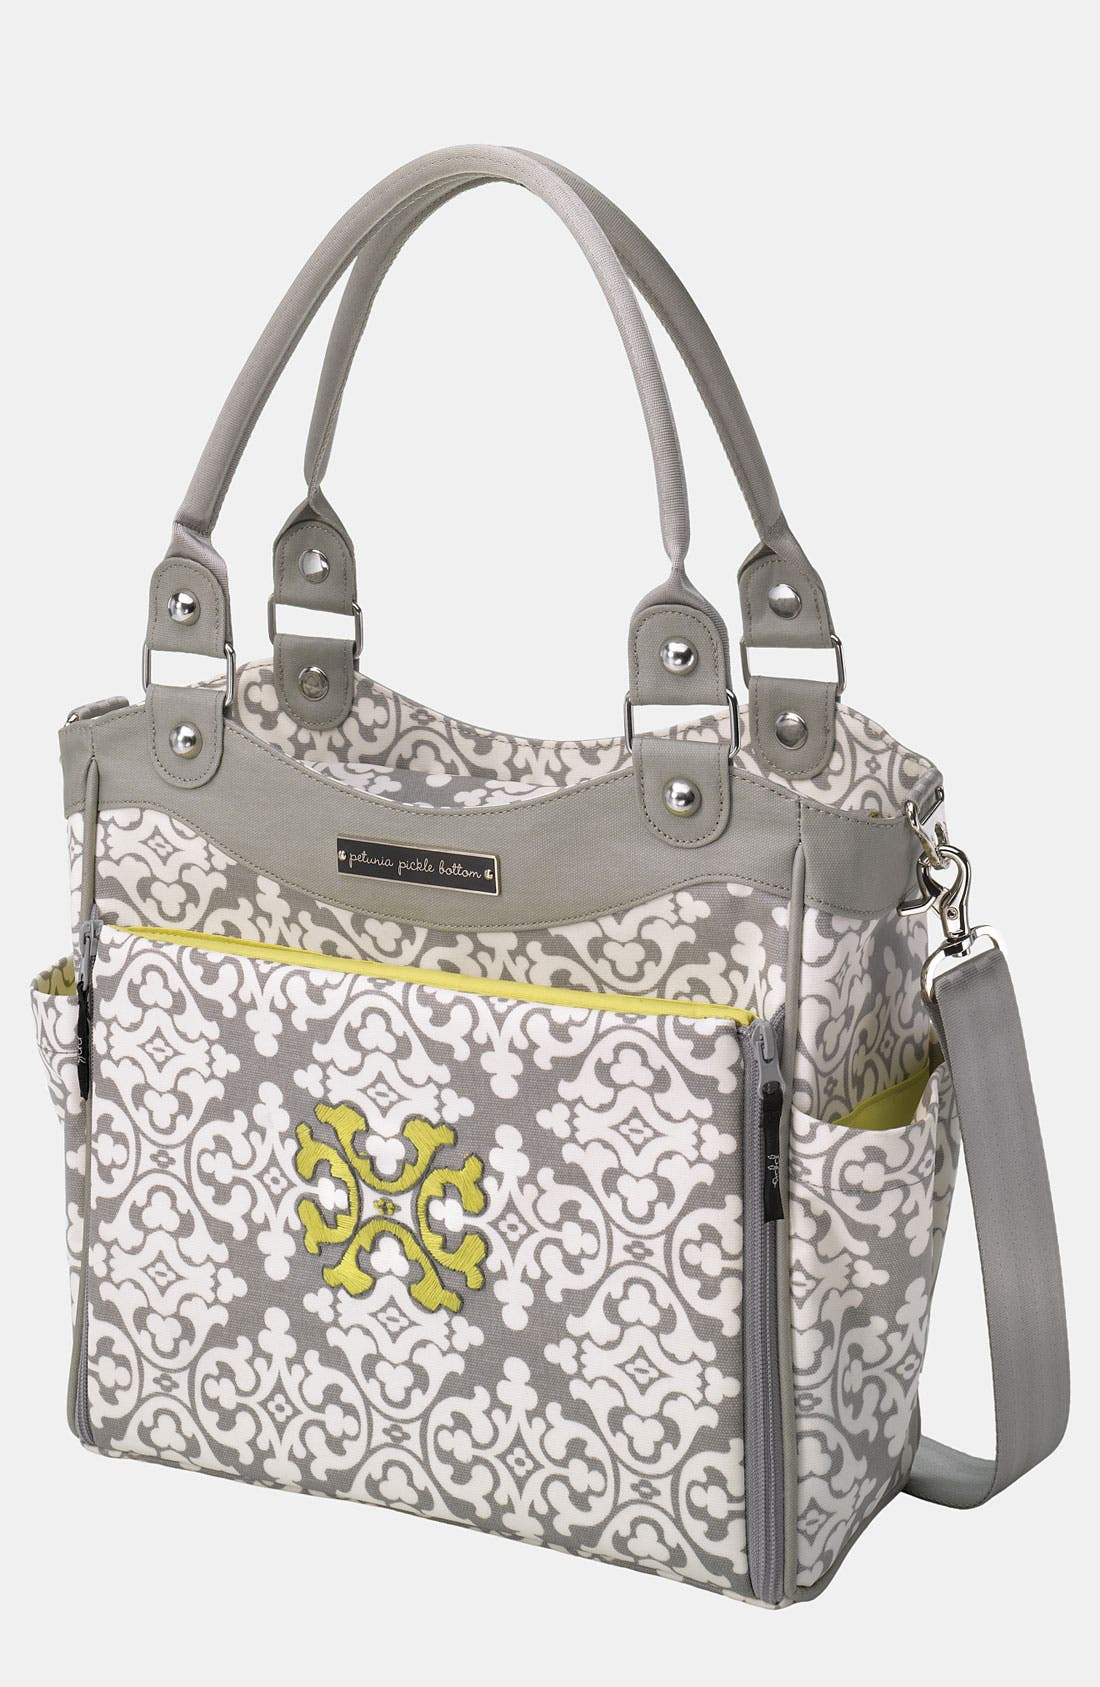 Alternate Image 1 Selected - Petunia Pickle Bottom 'City Carryall' Diaper Bag